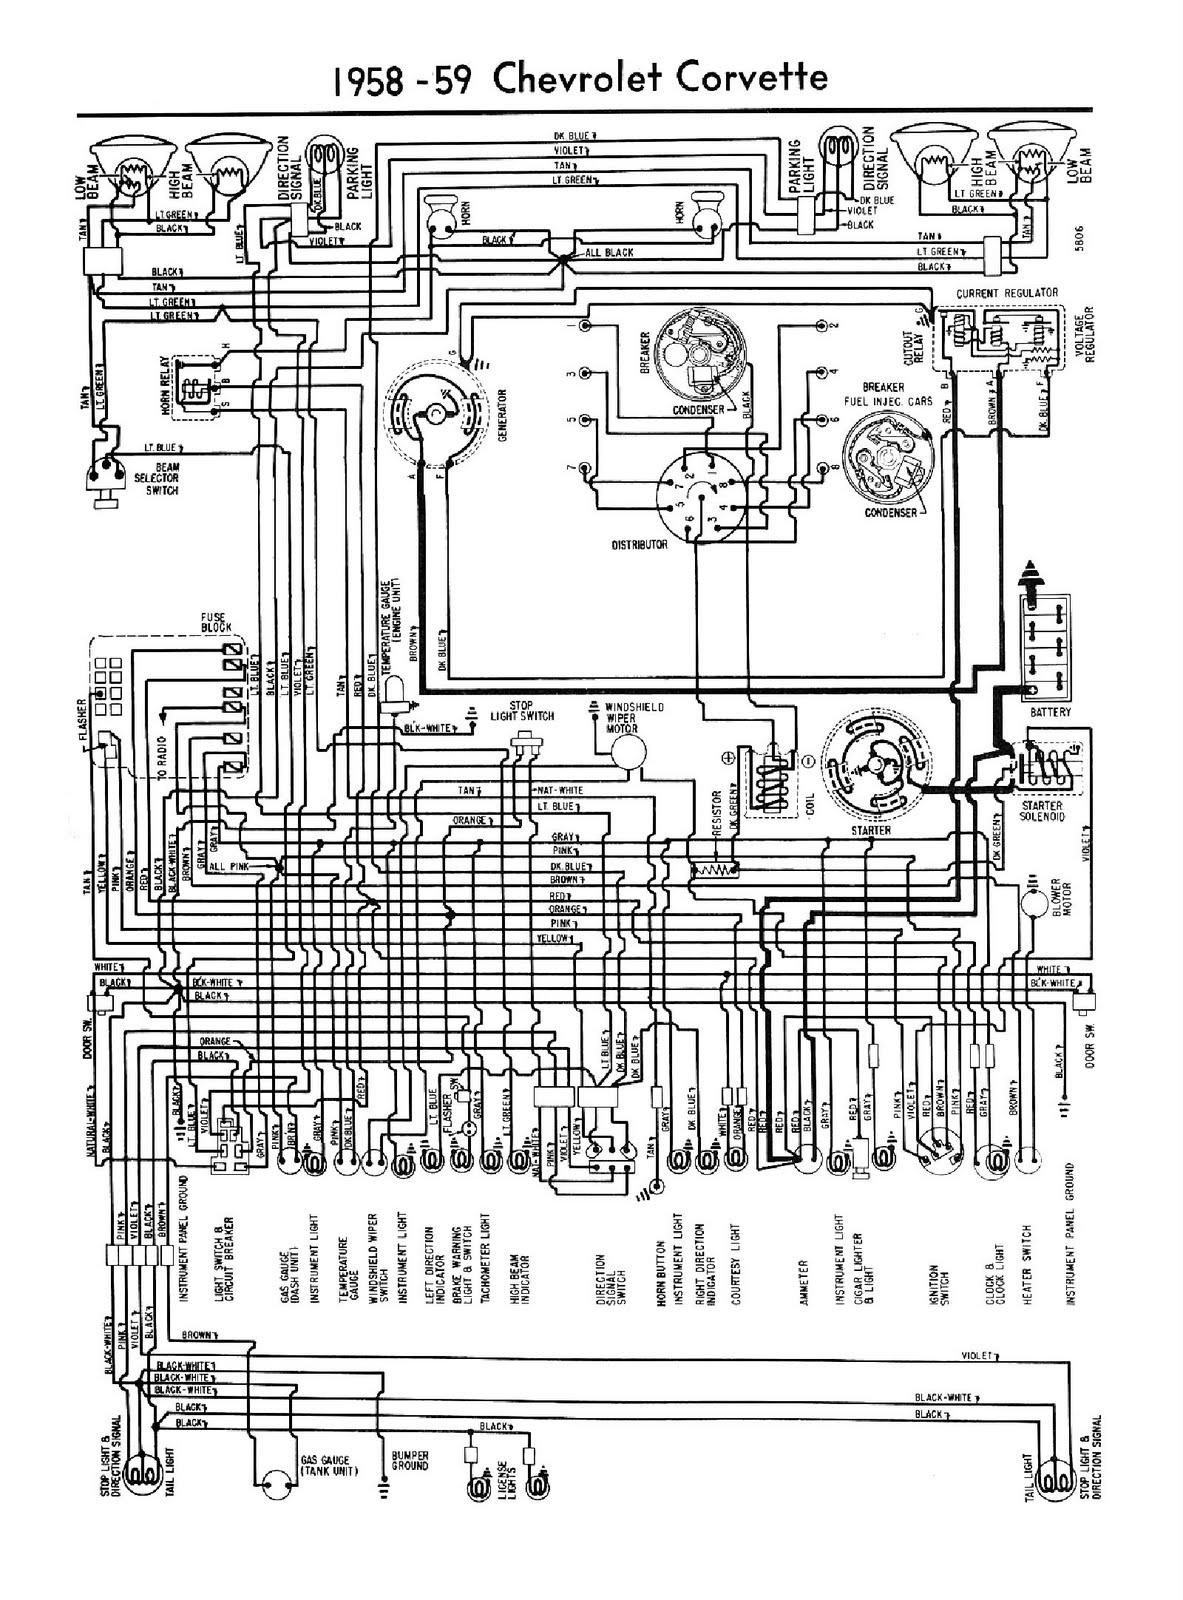 76 ford bronco wiring diagram Images Gallery. free auto wiring diagram 1958  1959 chevrolet corvette